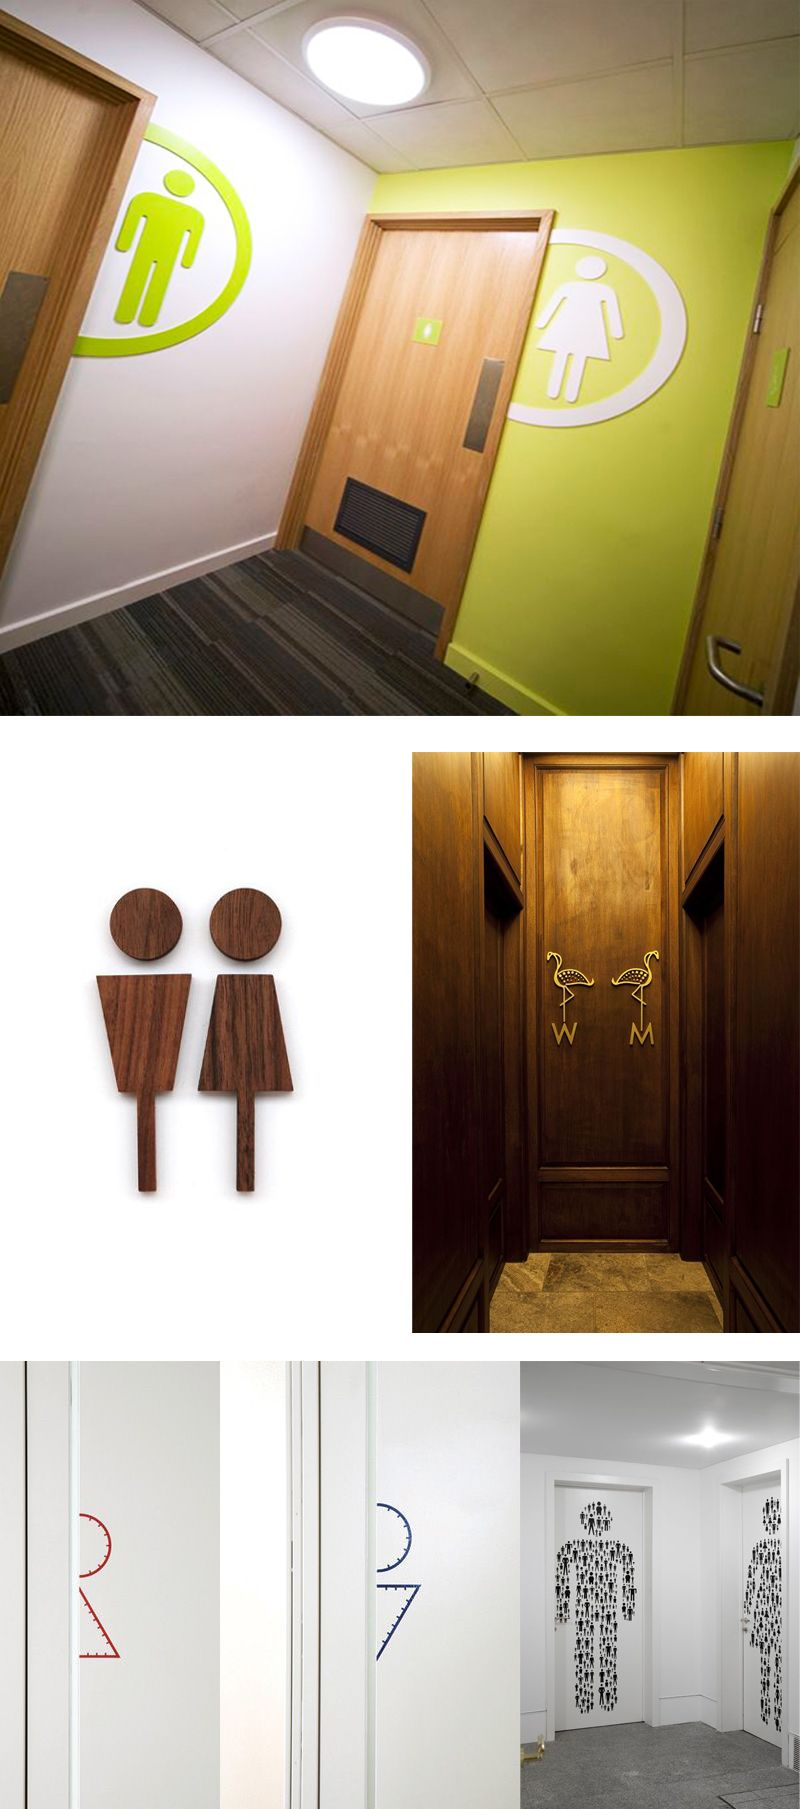 22 creative and funny toilet signs signage systems rh pinterest com